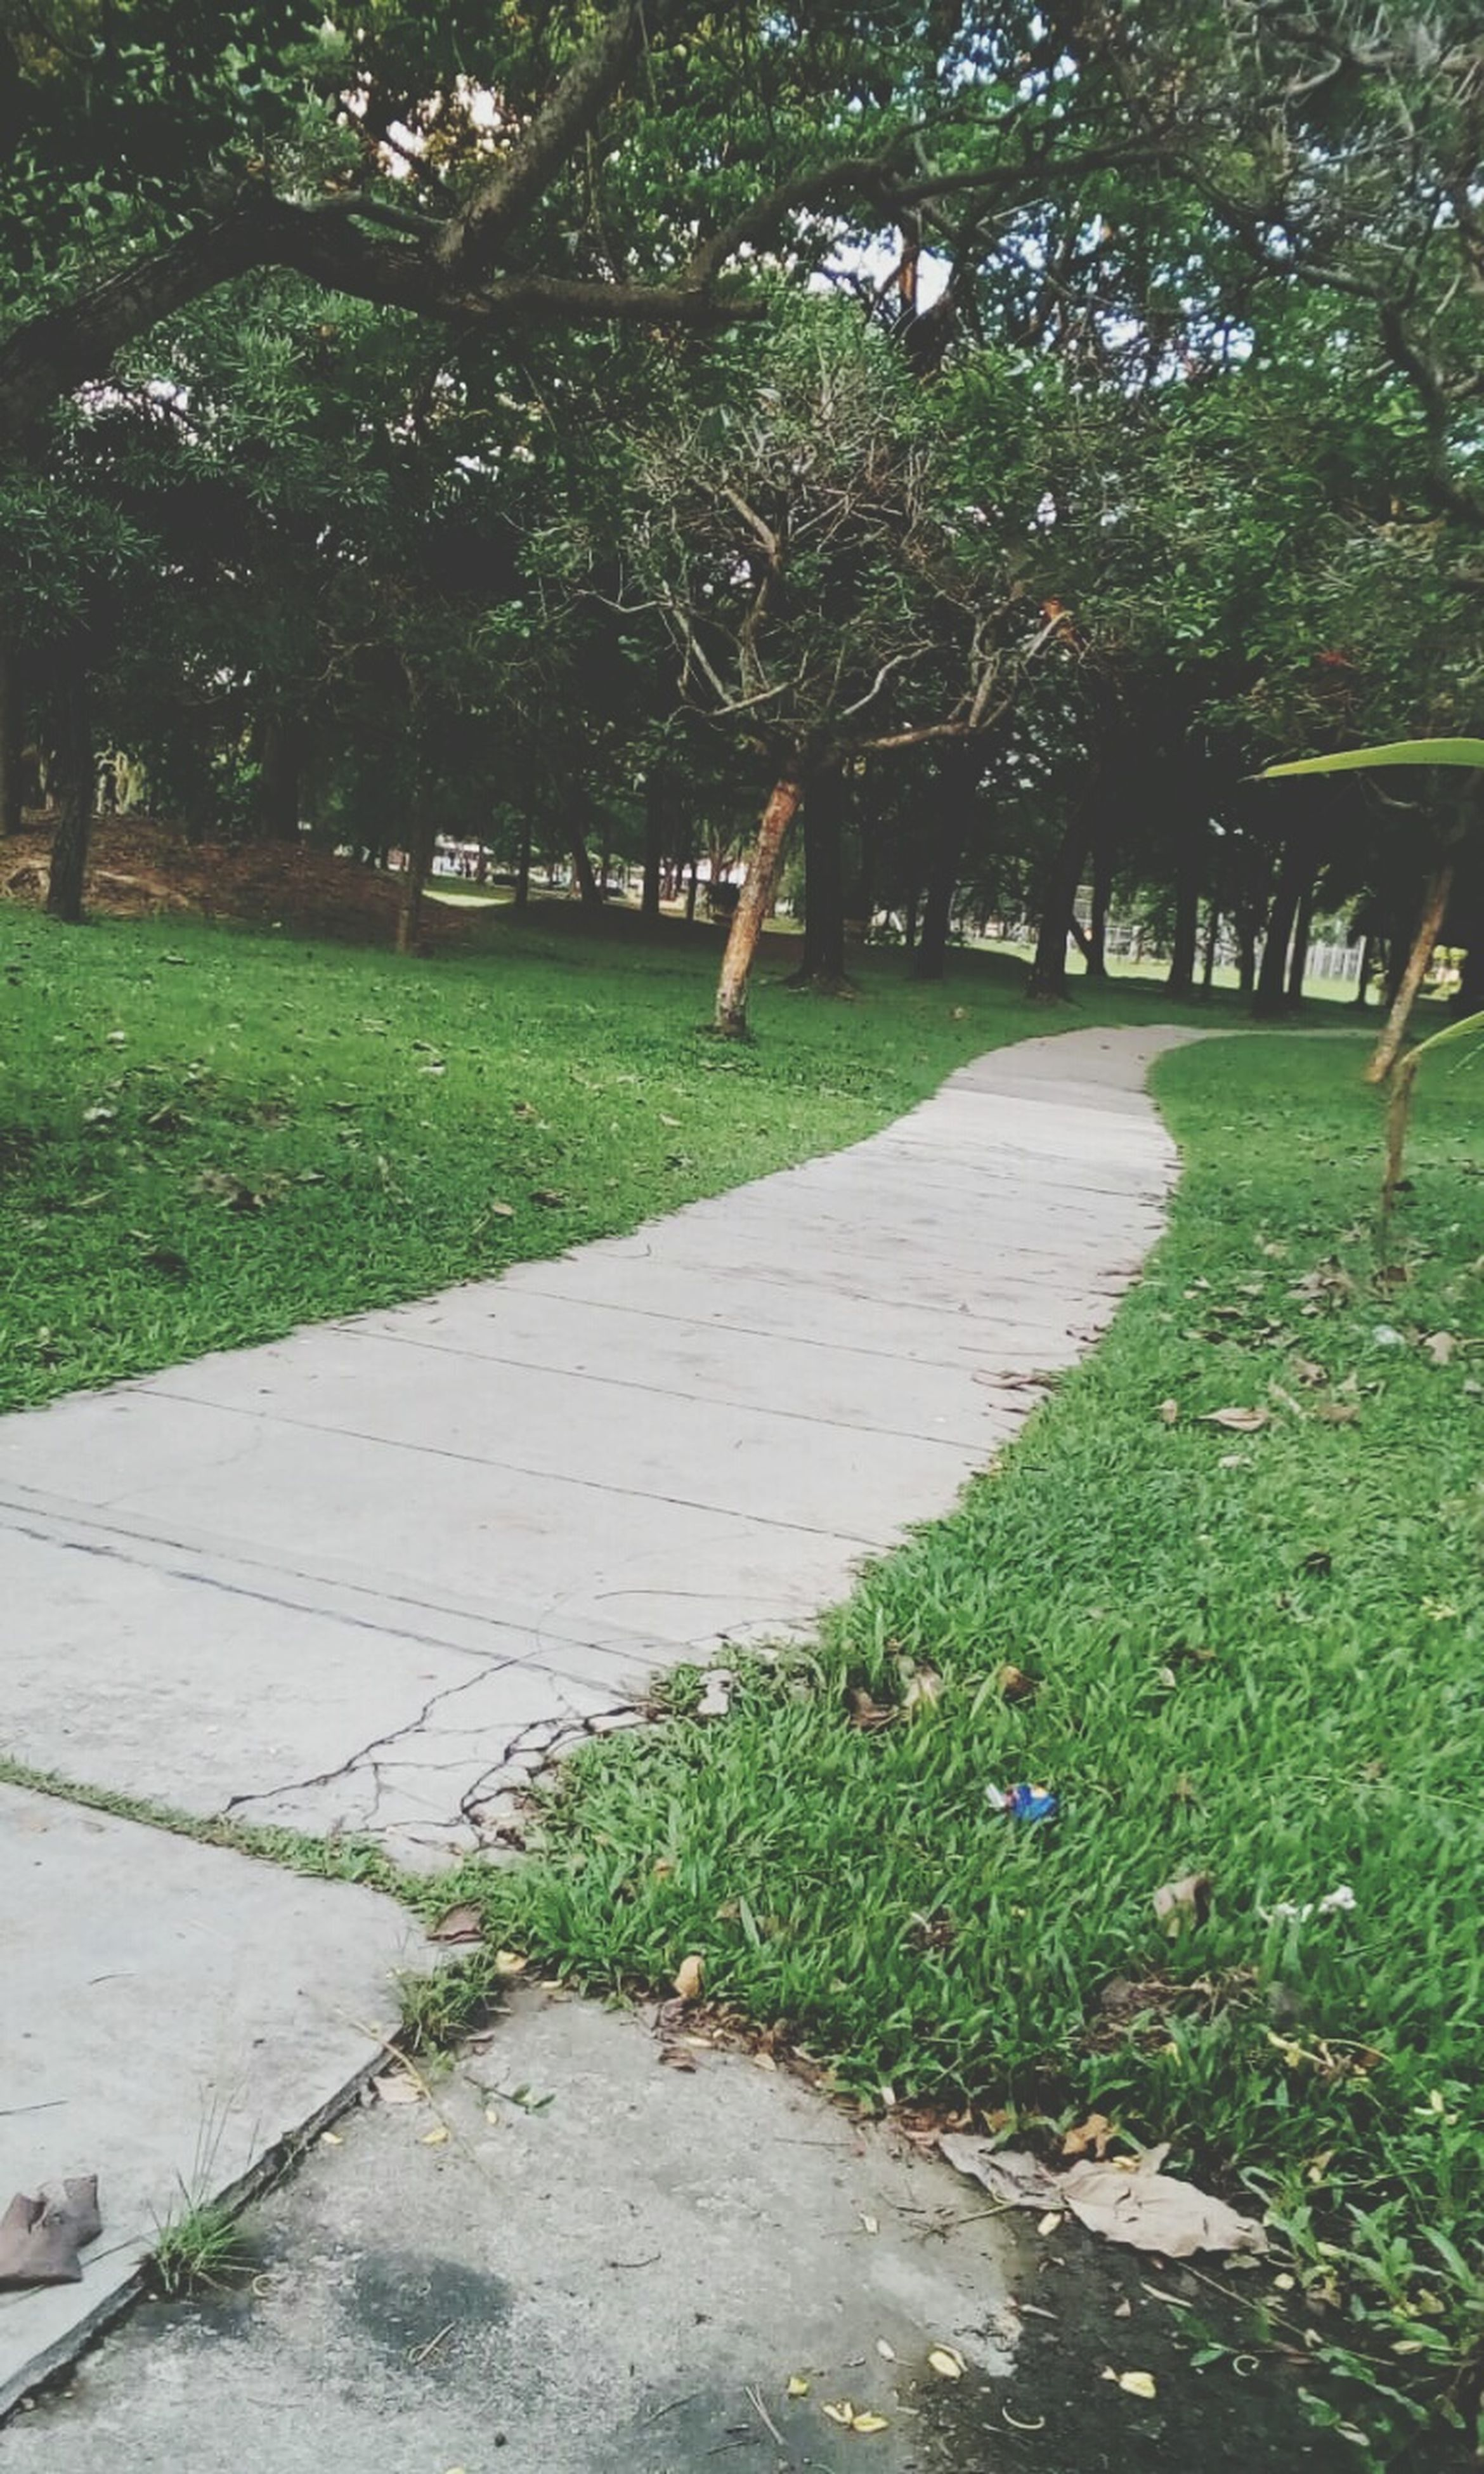 tree, green color, grass, growth, footpath, the way forward, park - man made space, nature, tranquility, shadow, sunlight, walkway, day, beauty in nature, park, outdoors, plant, tree trunk, no people, pathway